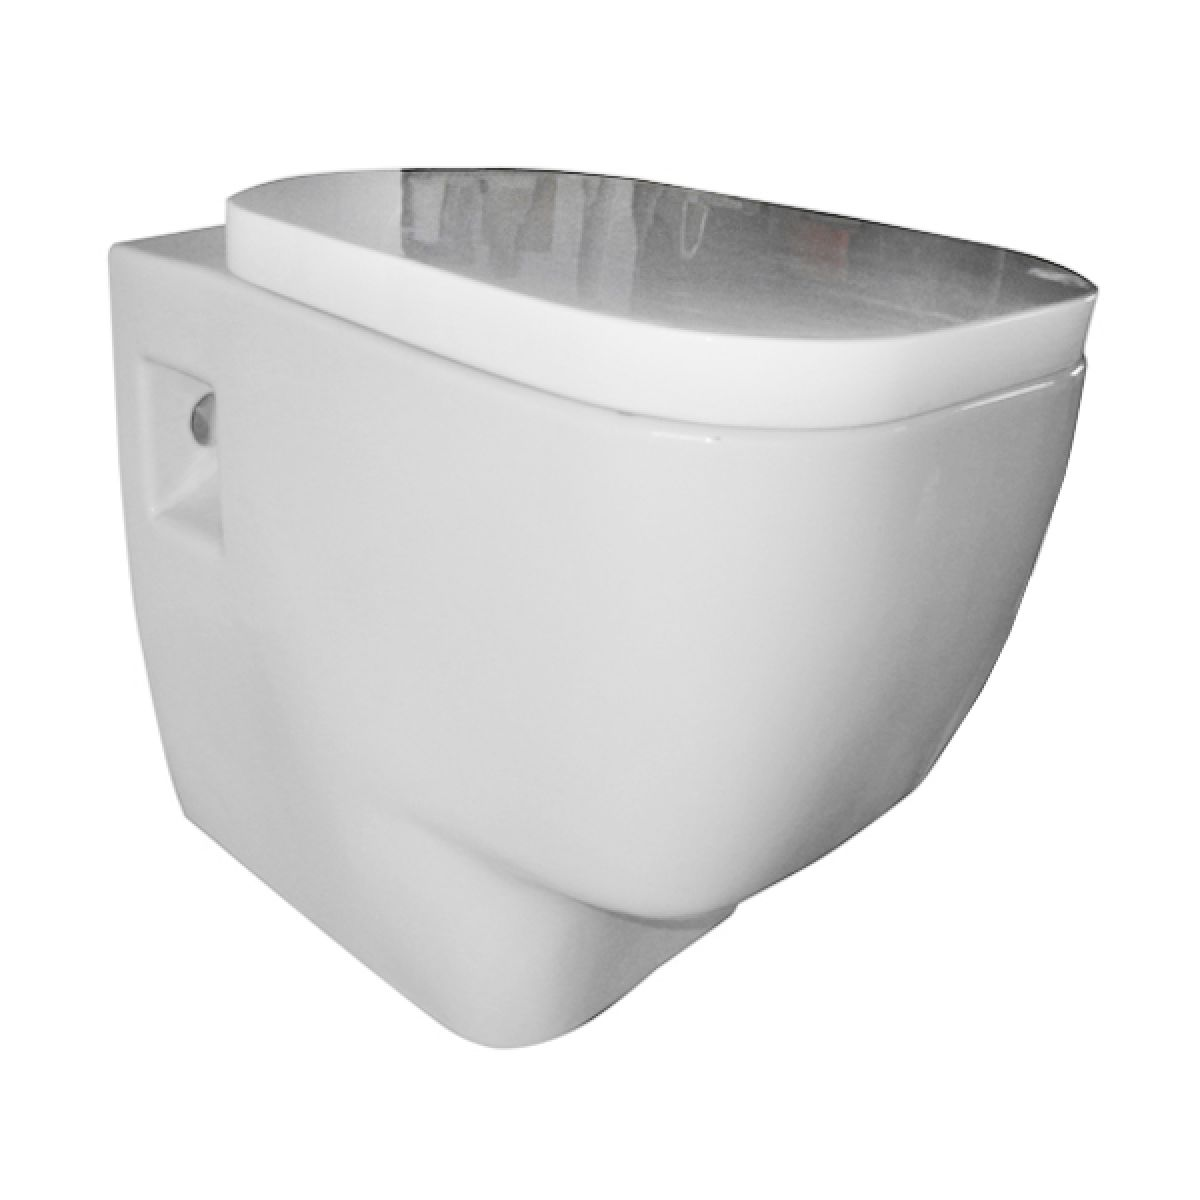 Frontline Cubix Wall Hung Toilet with Soft Close Seat